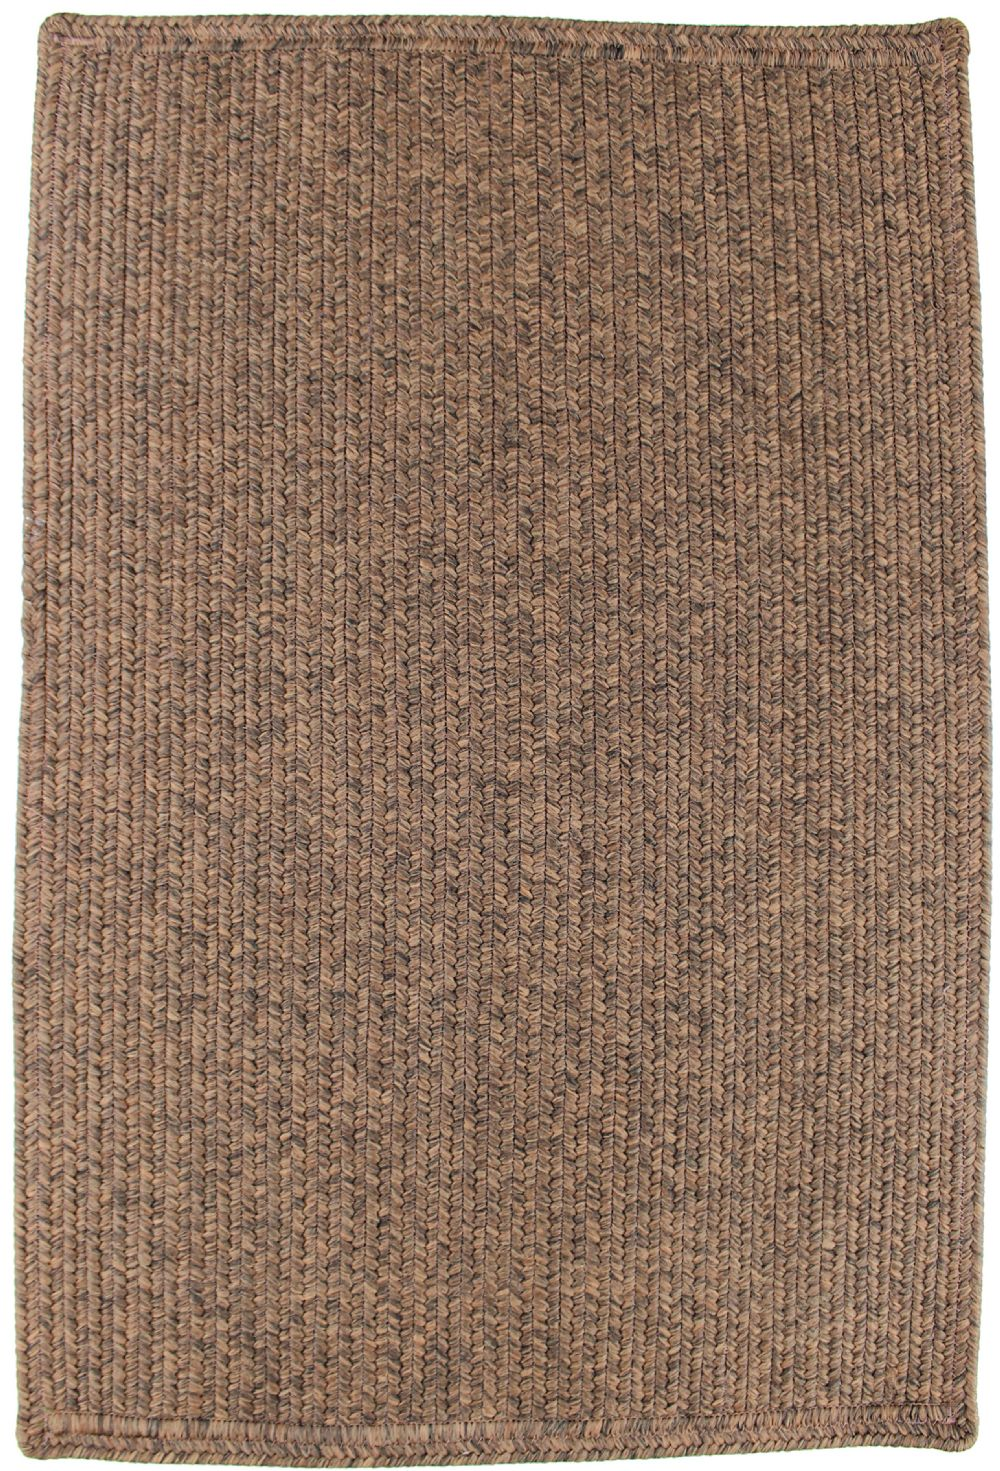 homespice decor burnished brown braided area rug collection